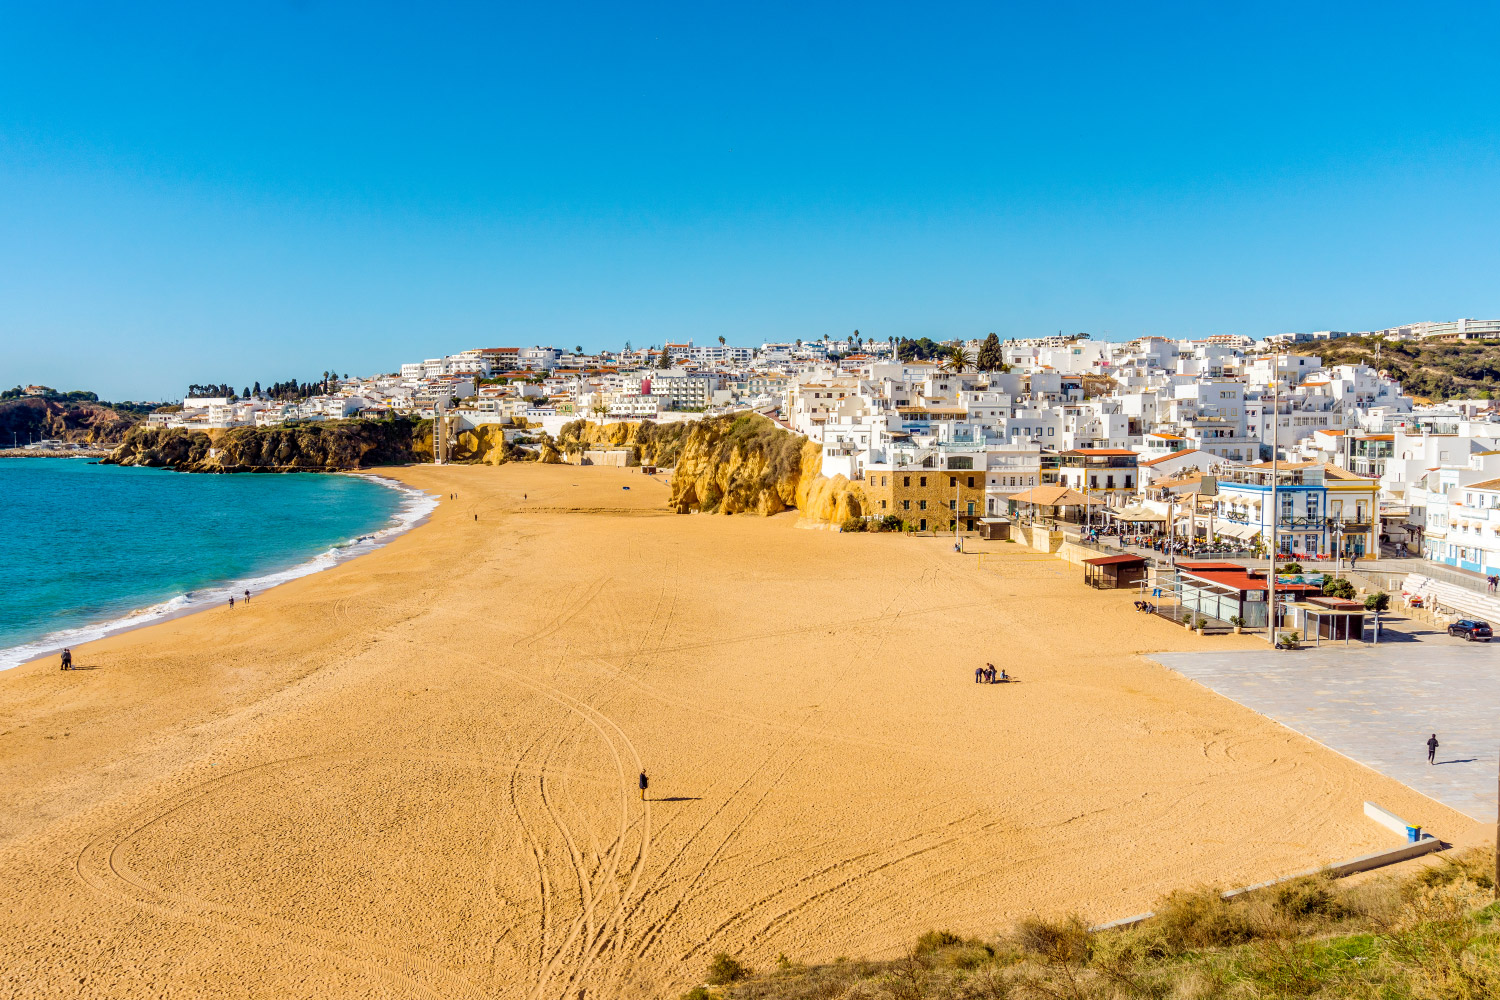 407/Photos/Services/albufeira-beach.jpg